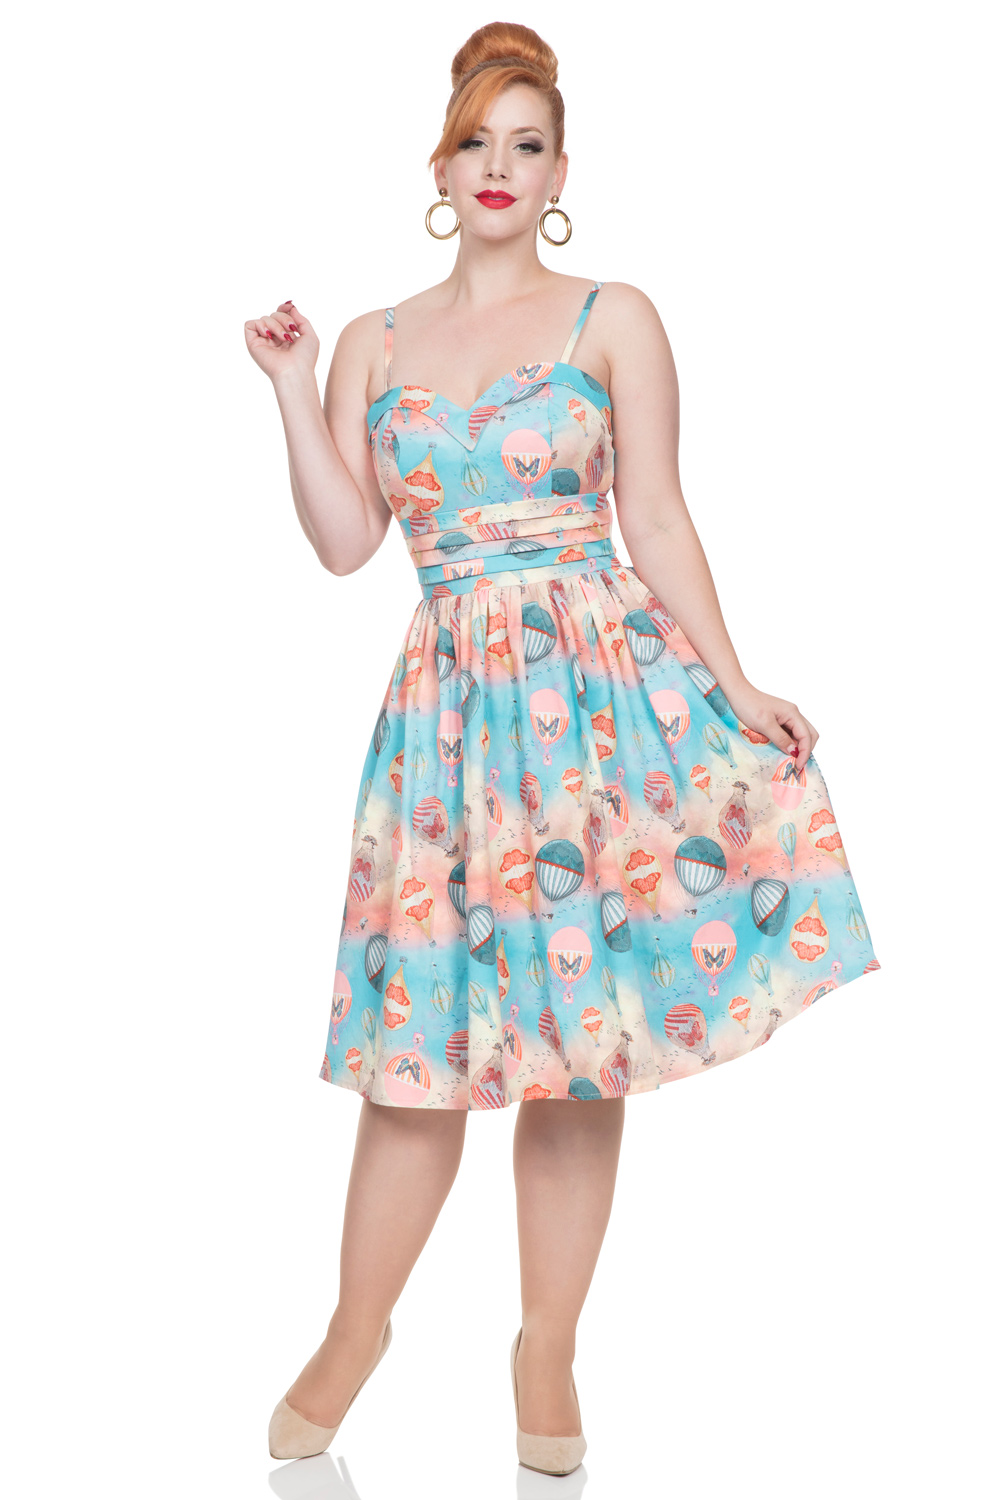 Aria Hot Air Balloon Print Dress